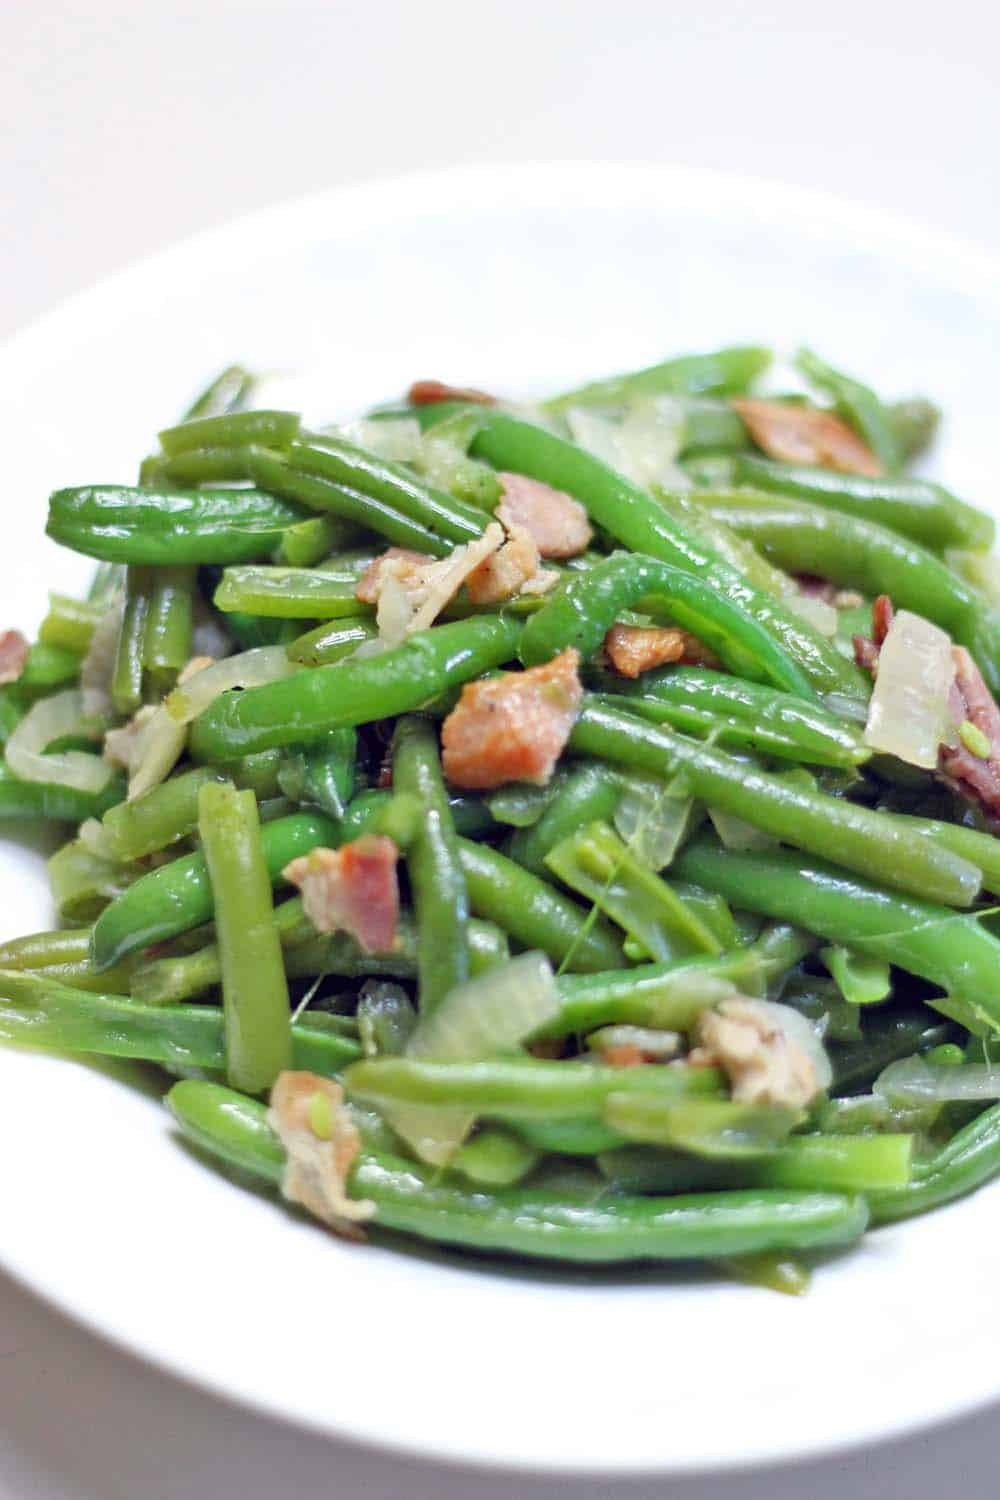 These Southern Style Green Beans are easy and melt-in-your mouth delicious- they're smoky from the bacon and super savory from simmering to perfection in chicken broth! YUM.